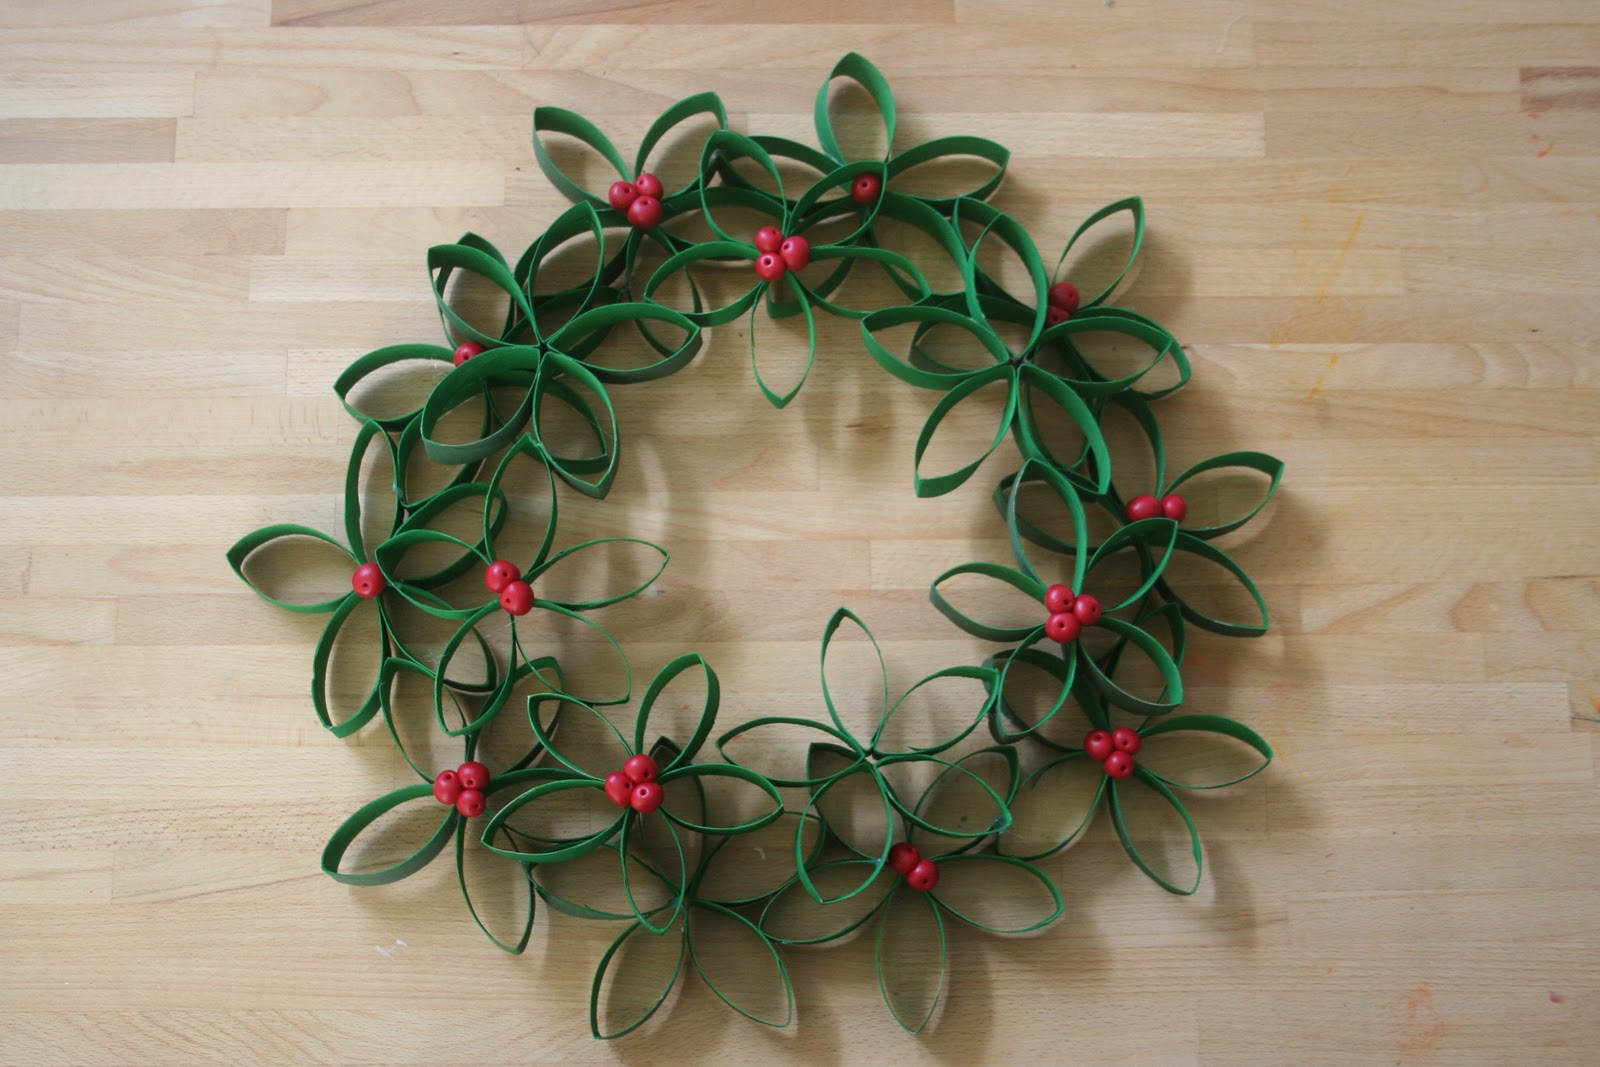 Toilet Paper Wreath